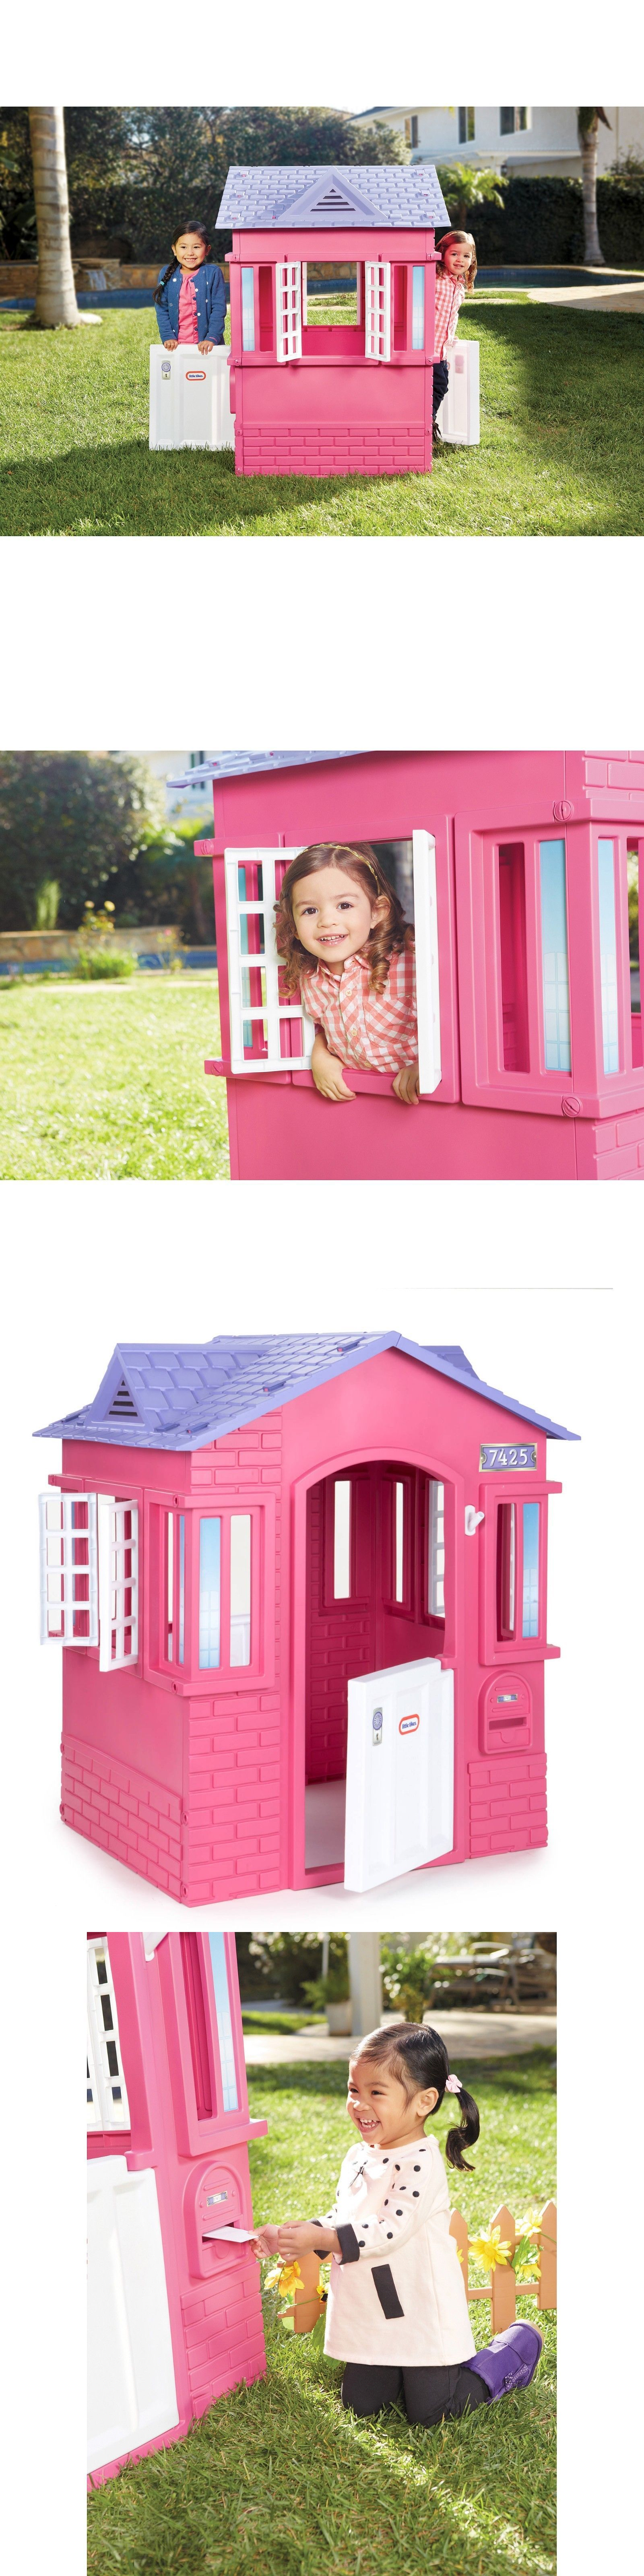 Permanent Playhouses 145995 Little Tikes Princess Cottage Playhouse Pink It Now Only 119 54 On Ebay